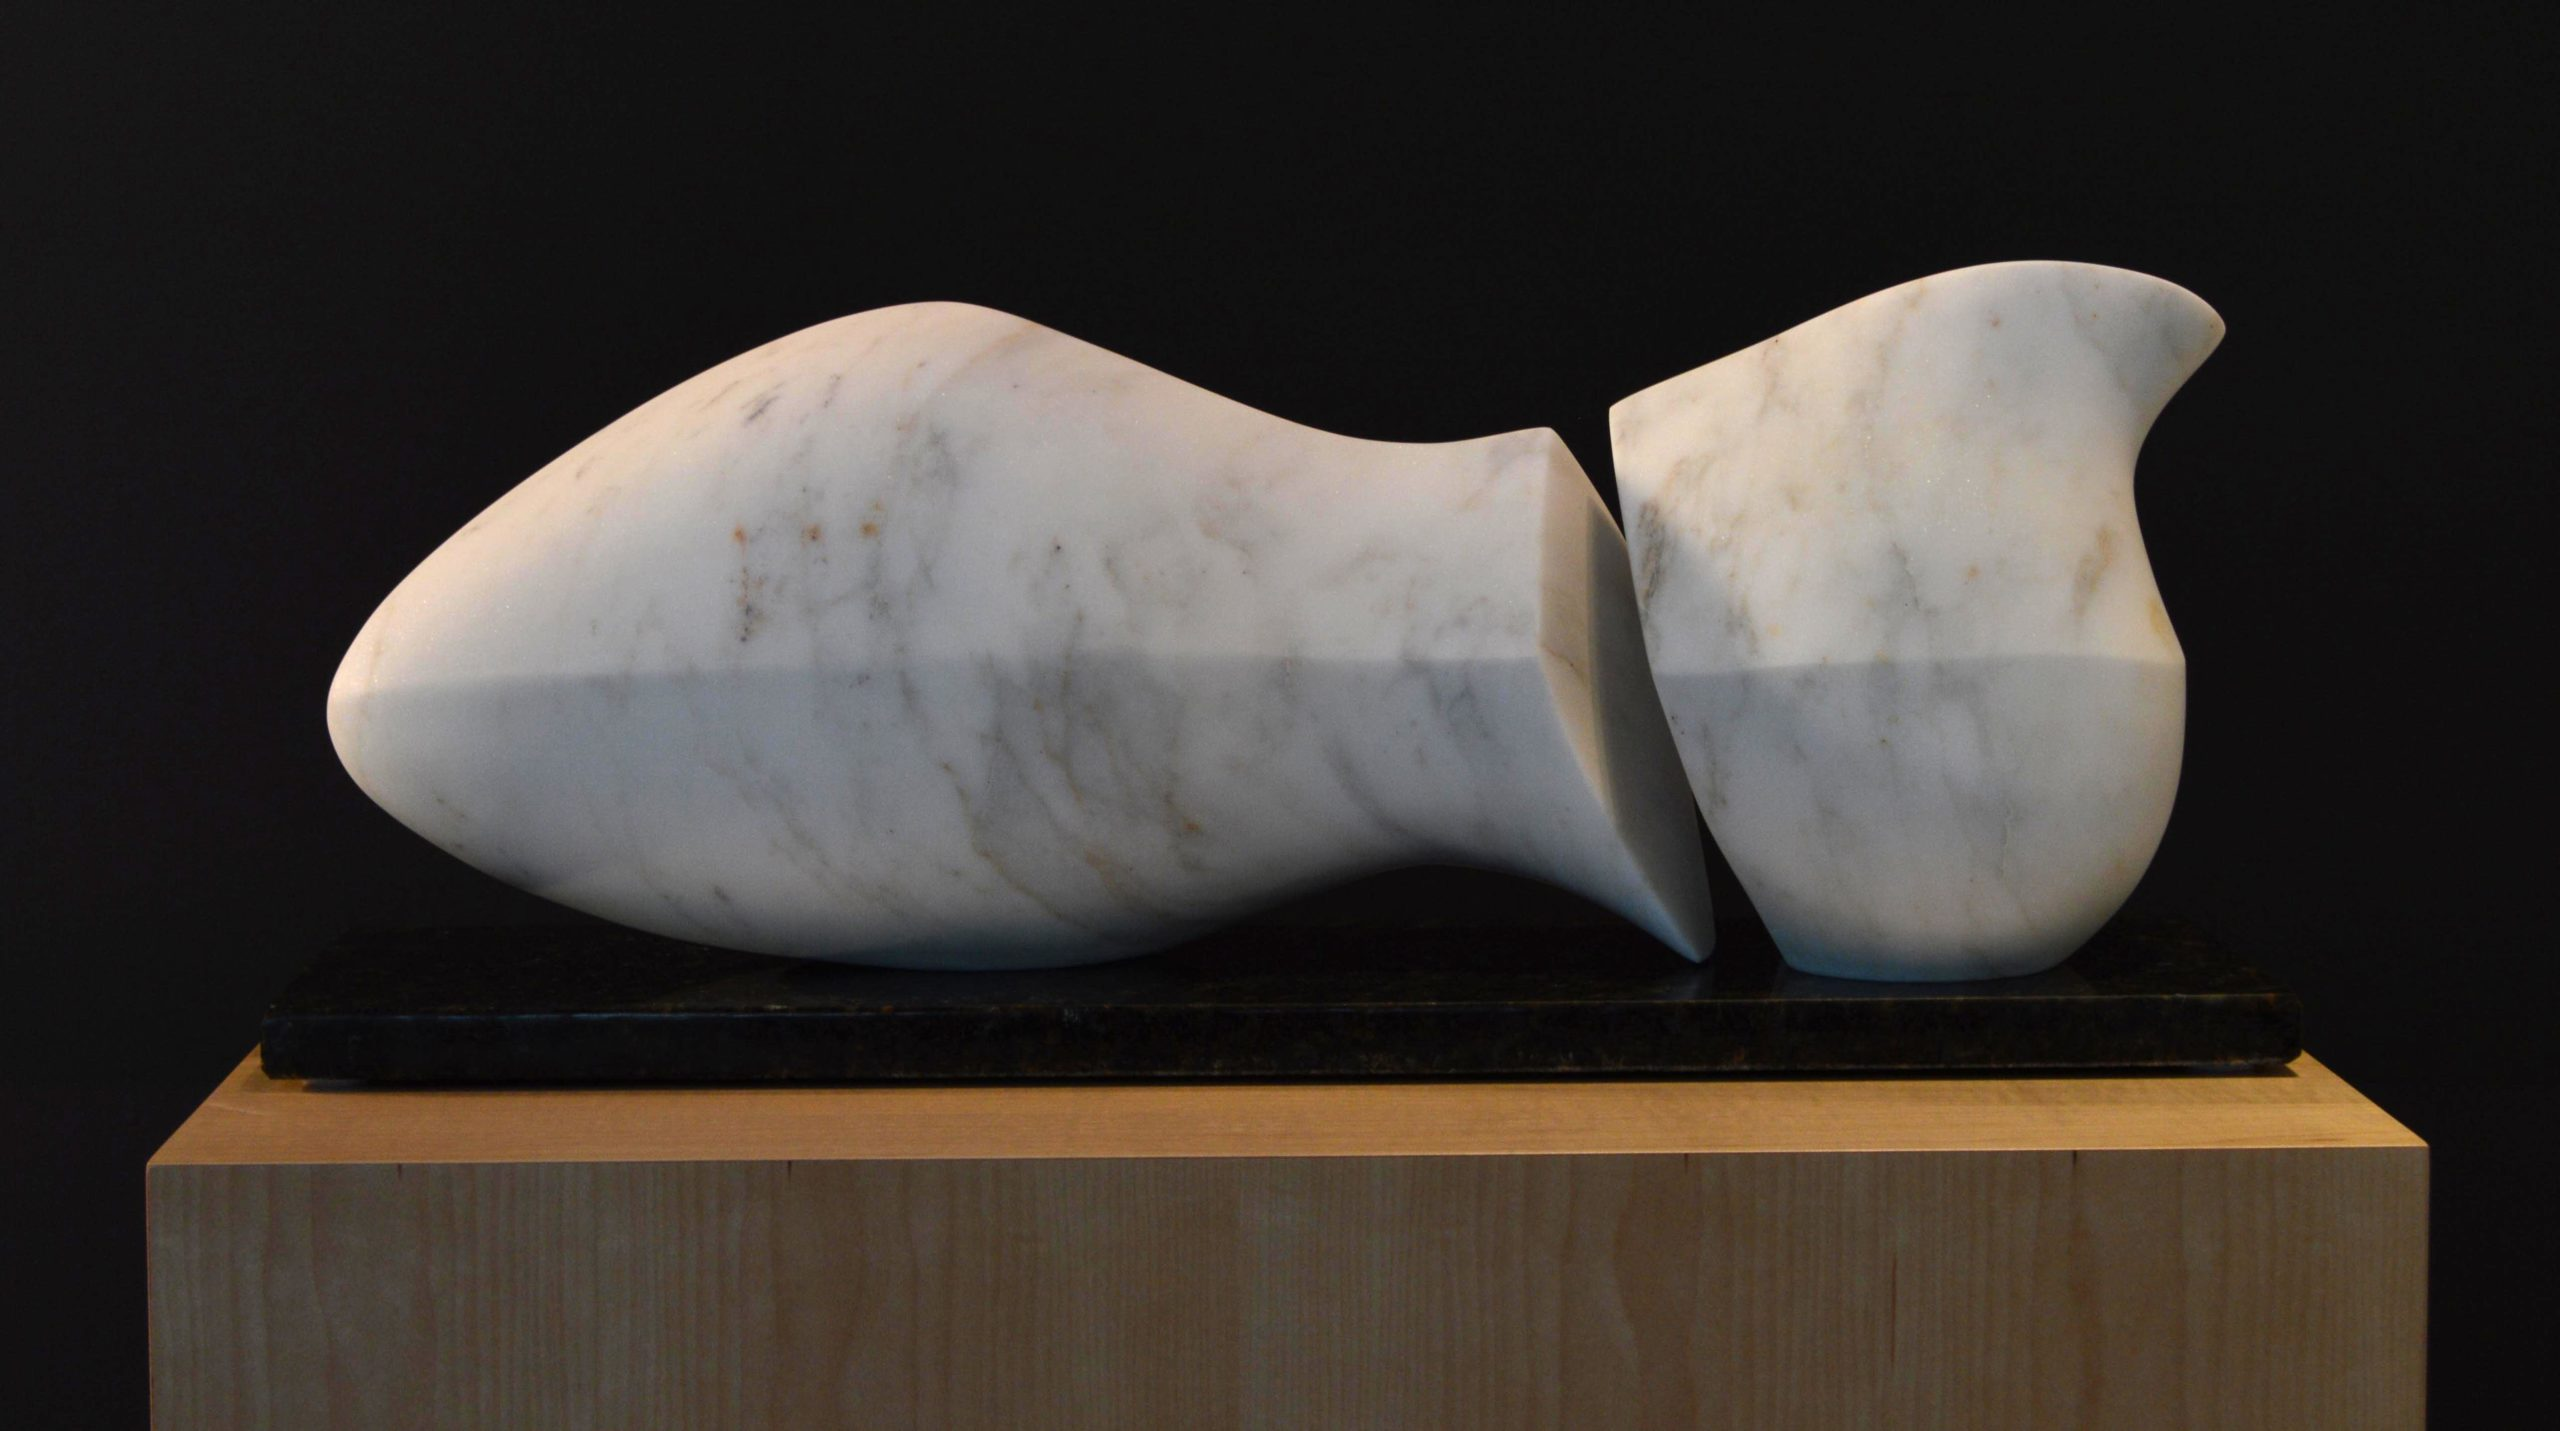 michael binkley sculptor stone sculpture abstract female torso carrara marble vancouver canada